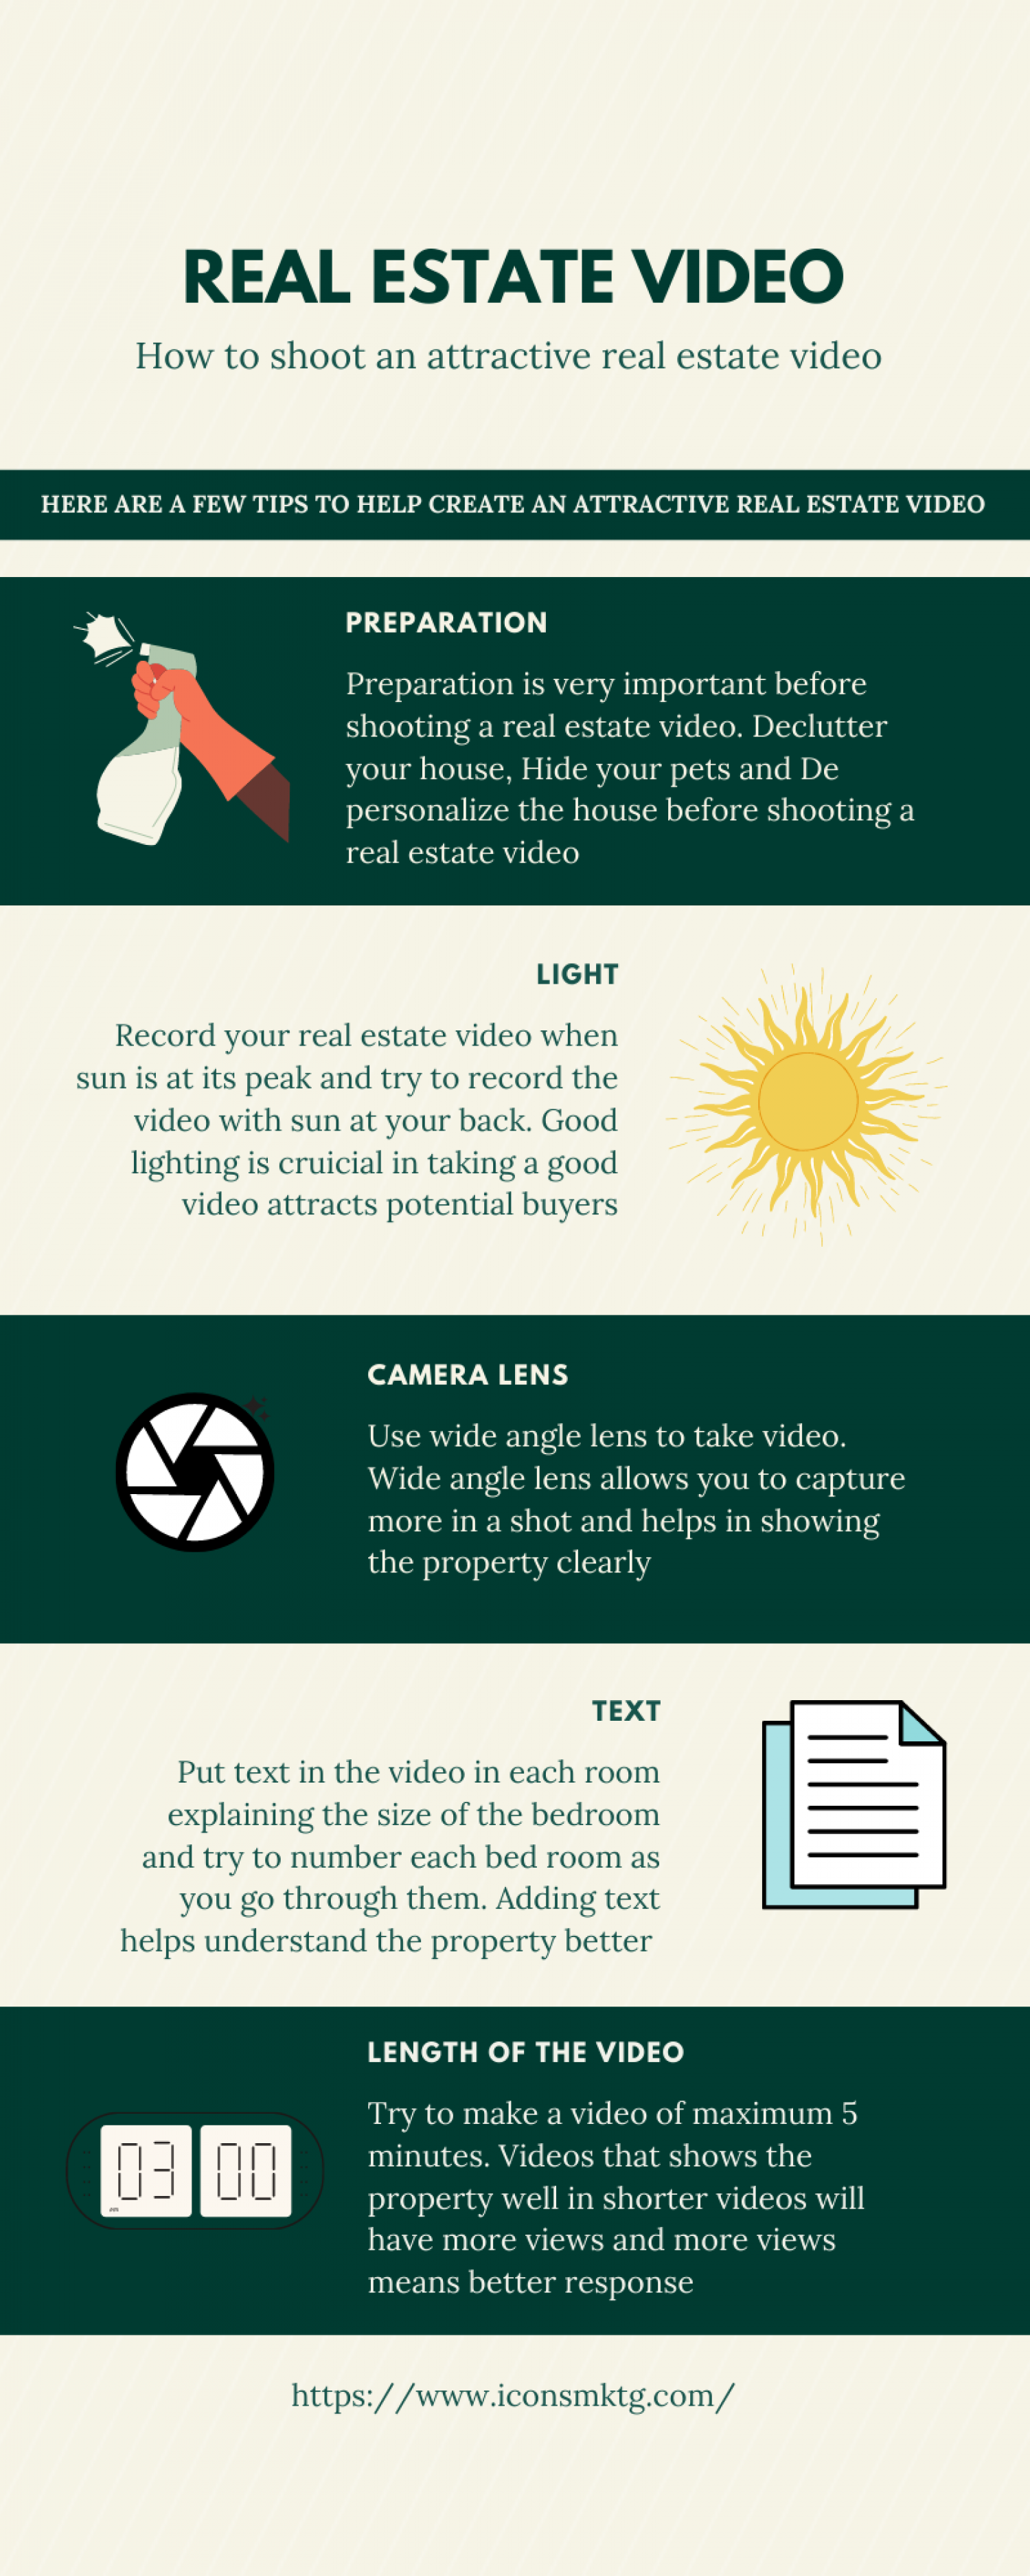 How to shoot an attractive real estate video Infographic